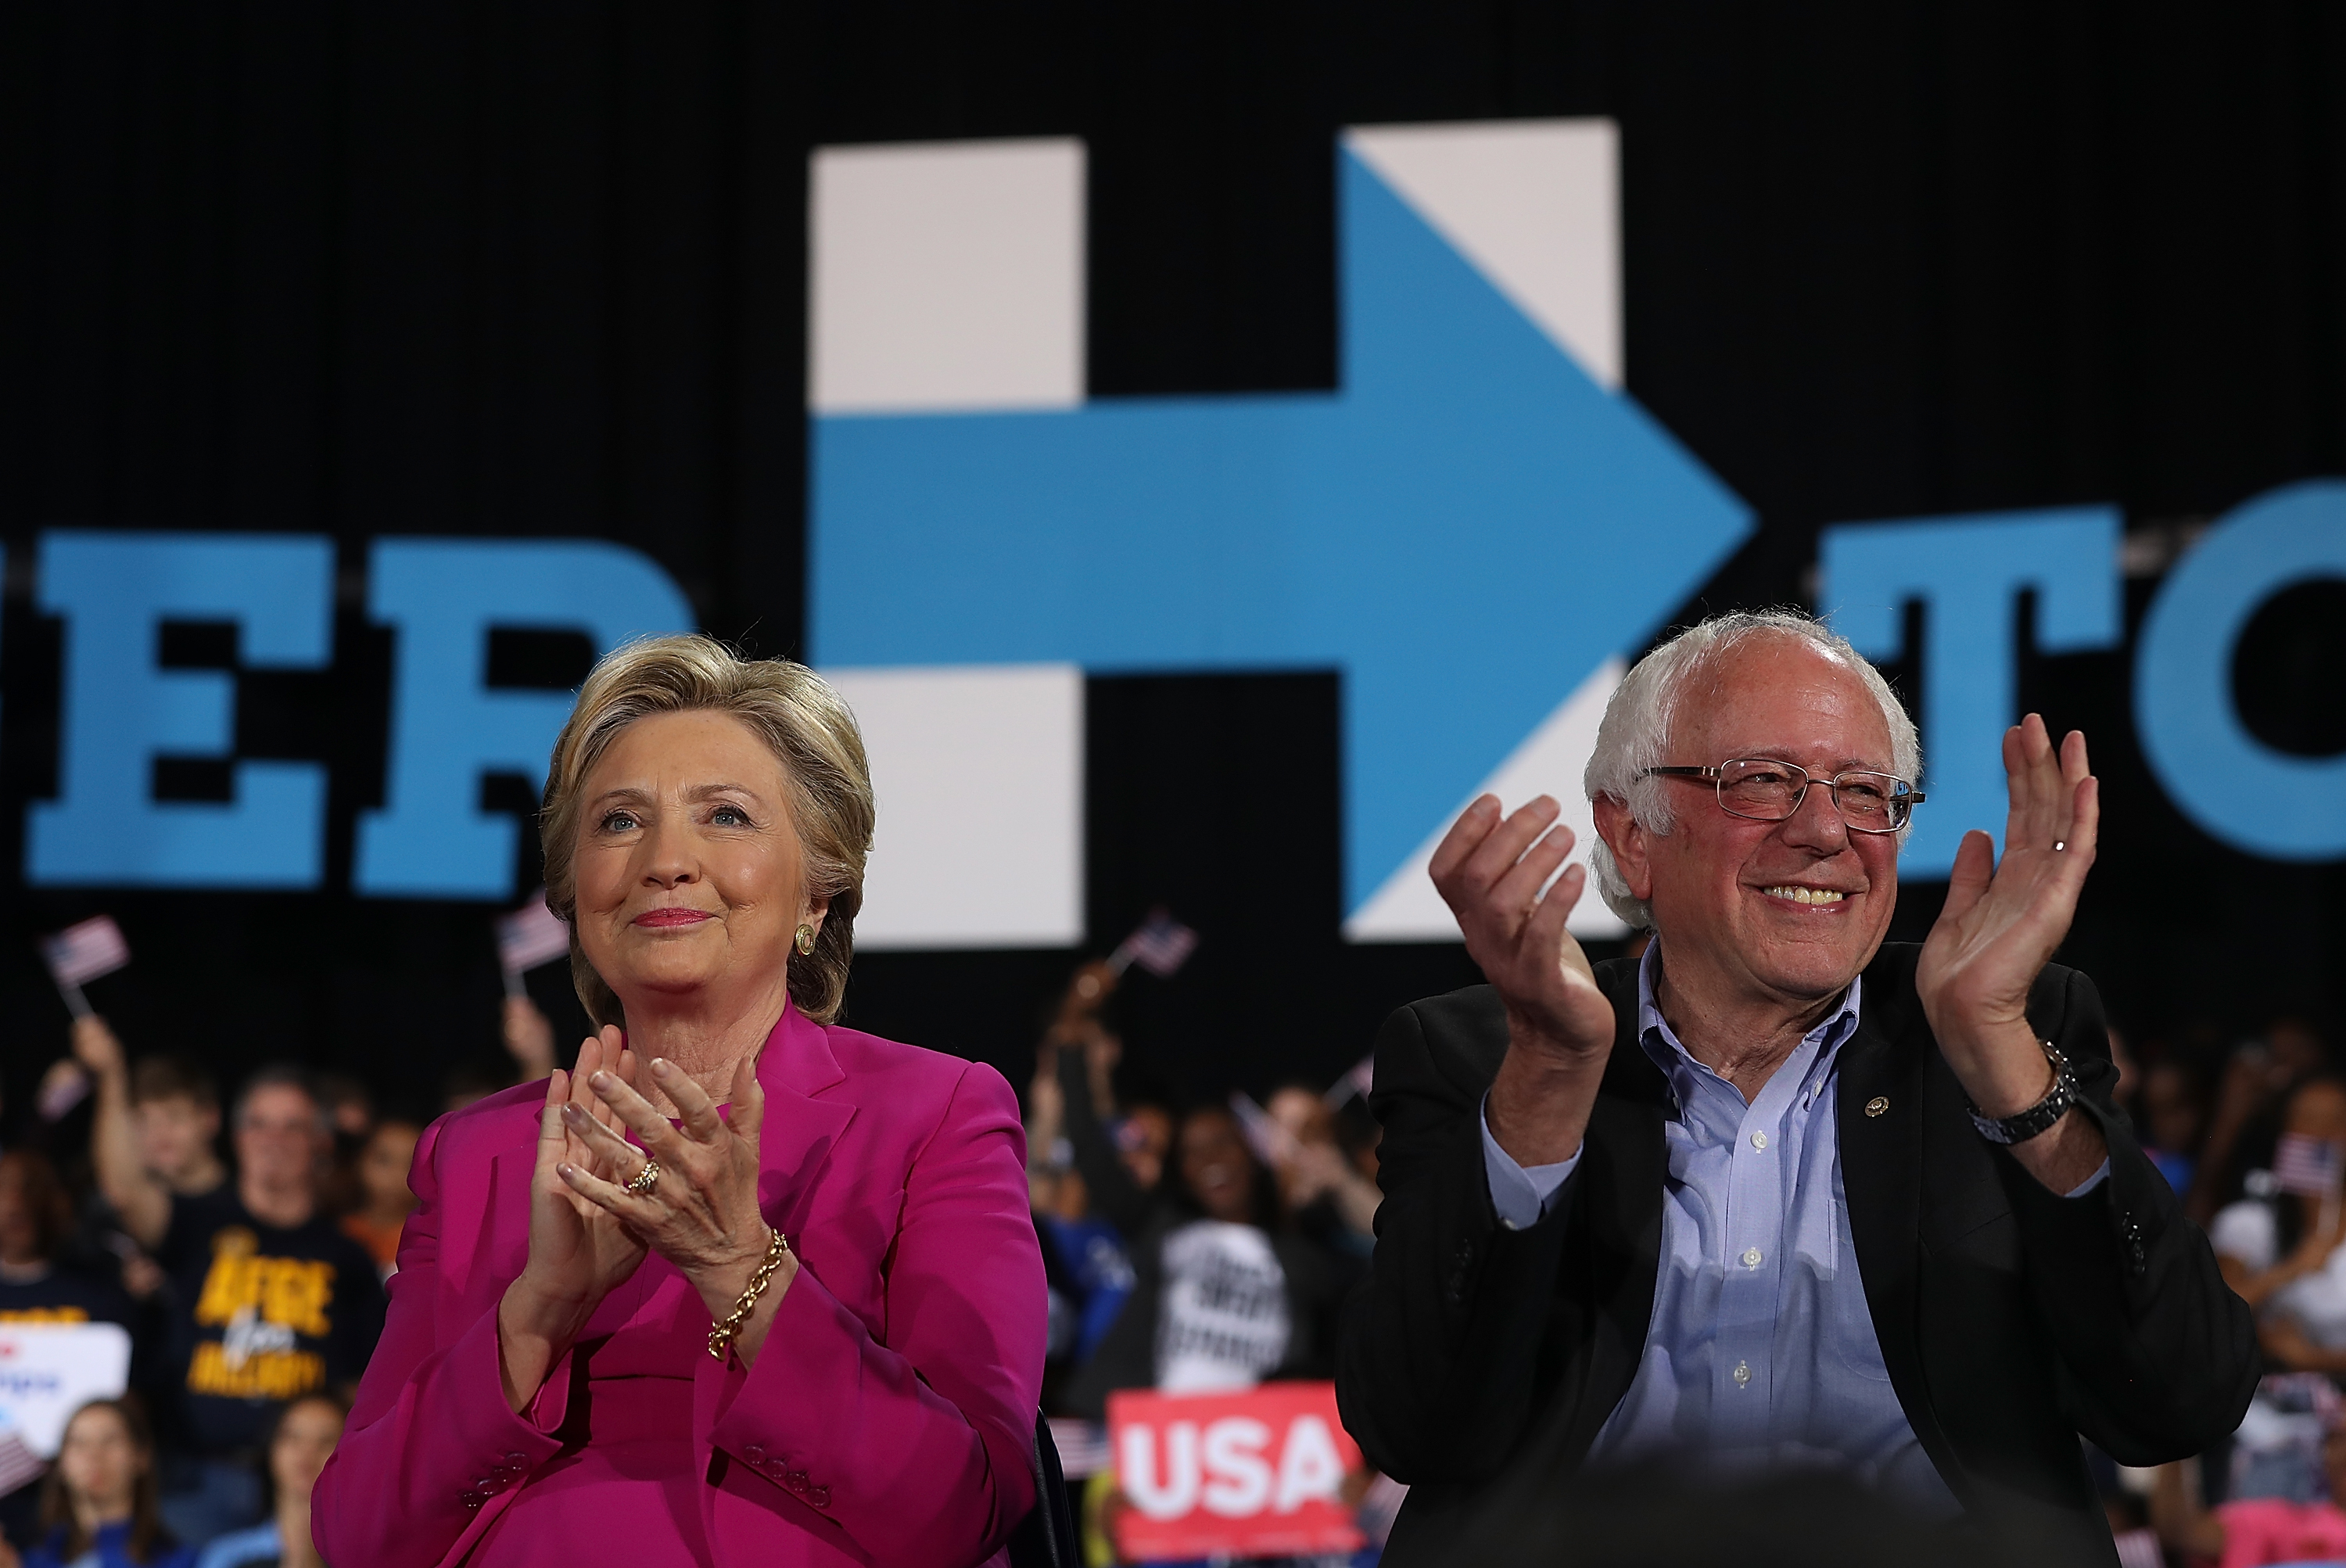 Hillary Clinton Campaigns In North Carolina Ahead Of Election